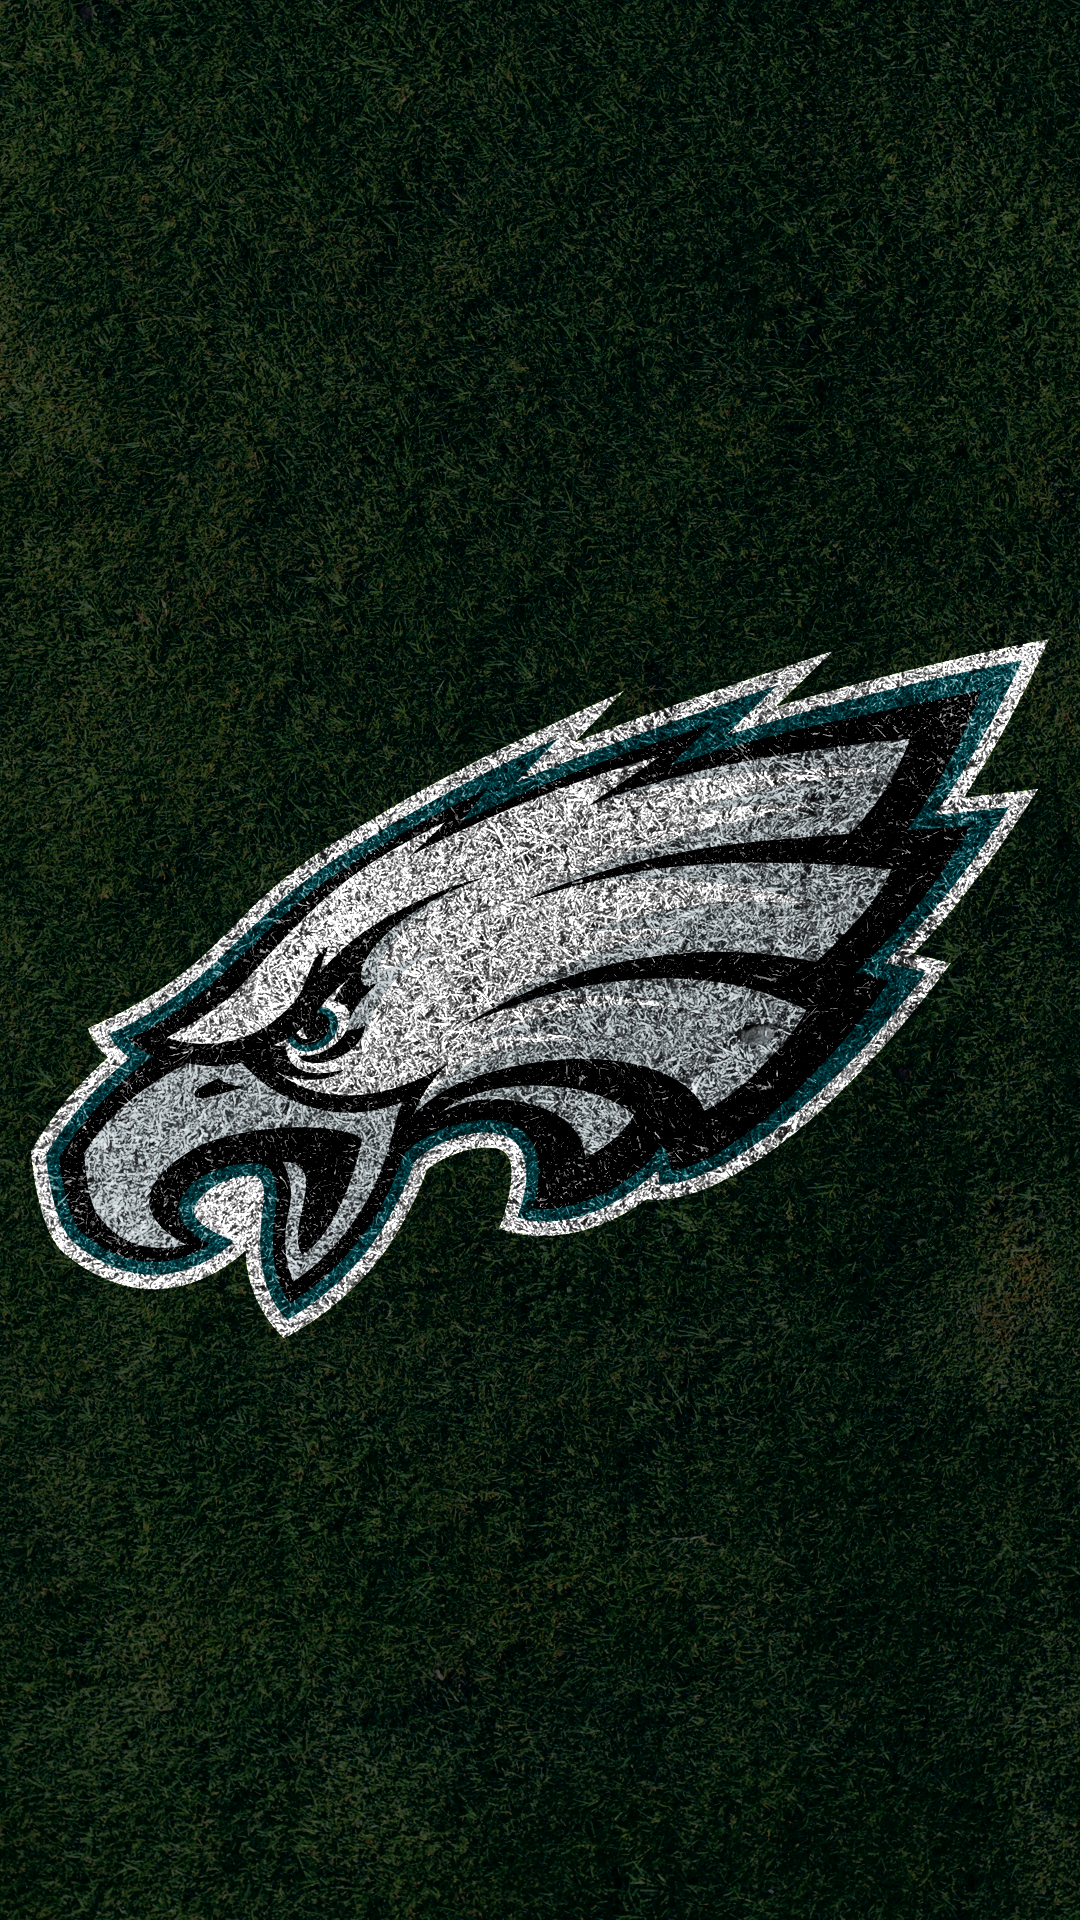 philadelphia eagles live wallpaper  Philadelphia Eagles Wallpapers Wallpaper | Eagles fan | Pinterest ...